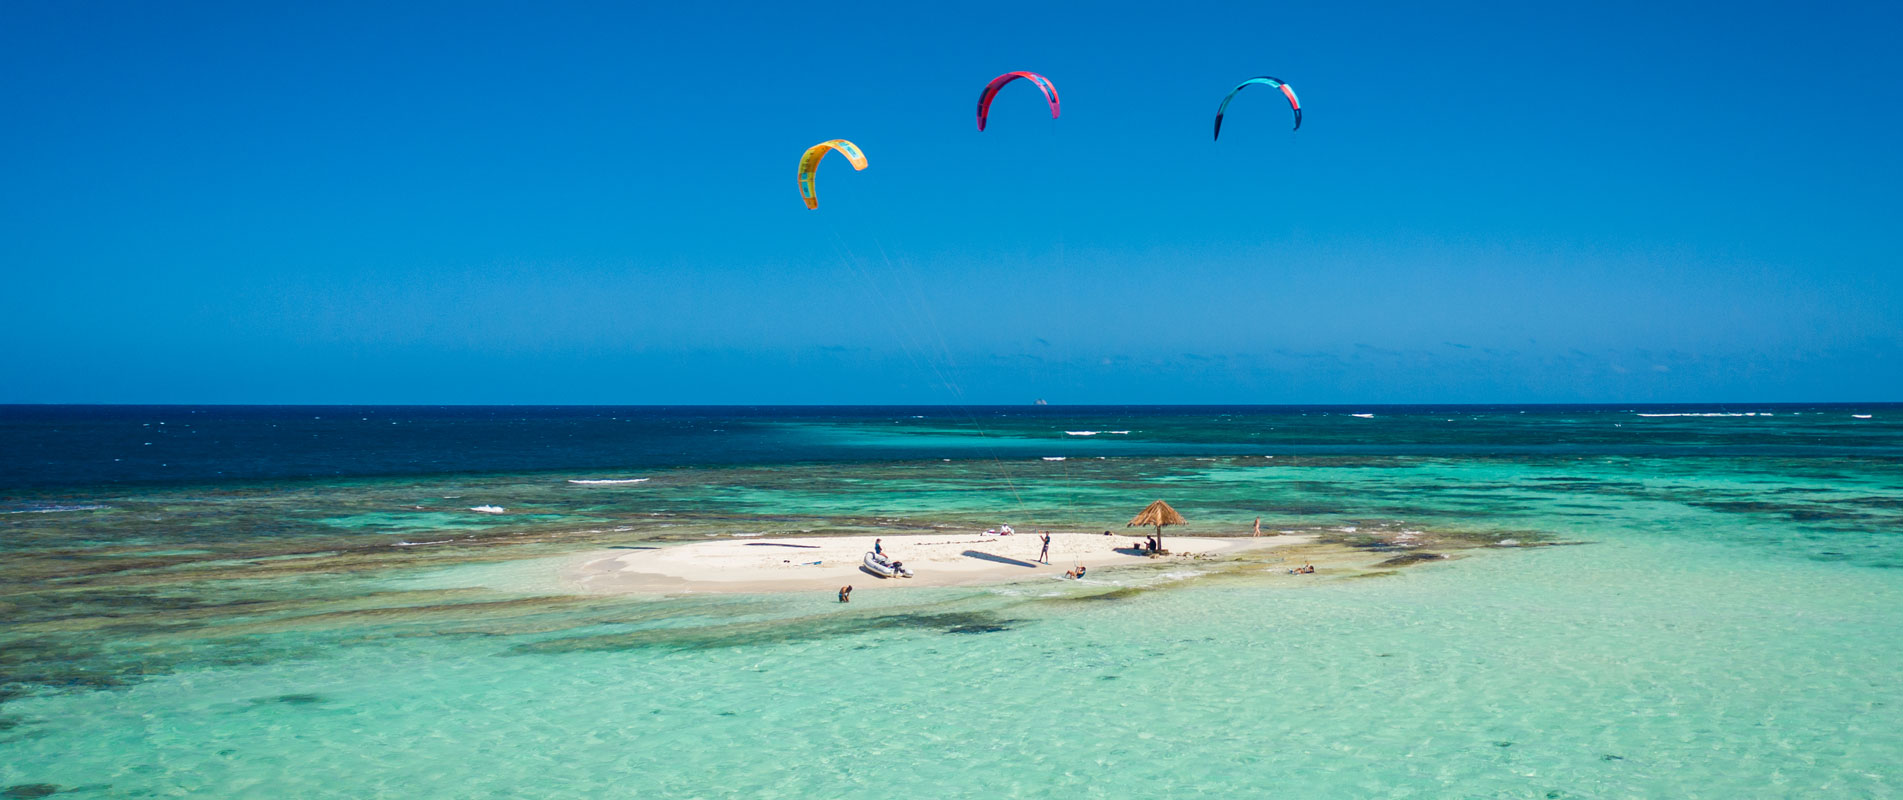 Kitesurfing on Mopion Island in the Grenadines